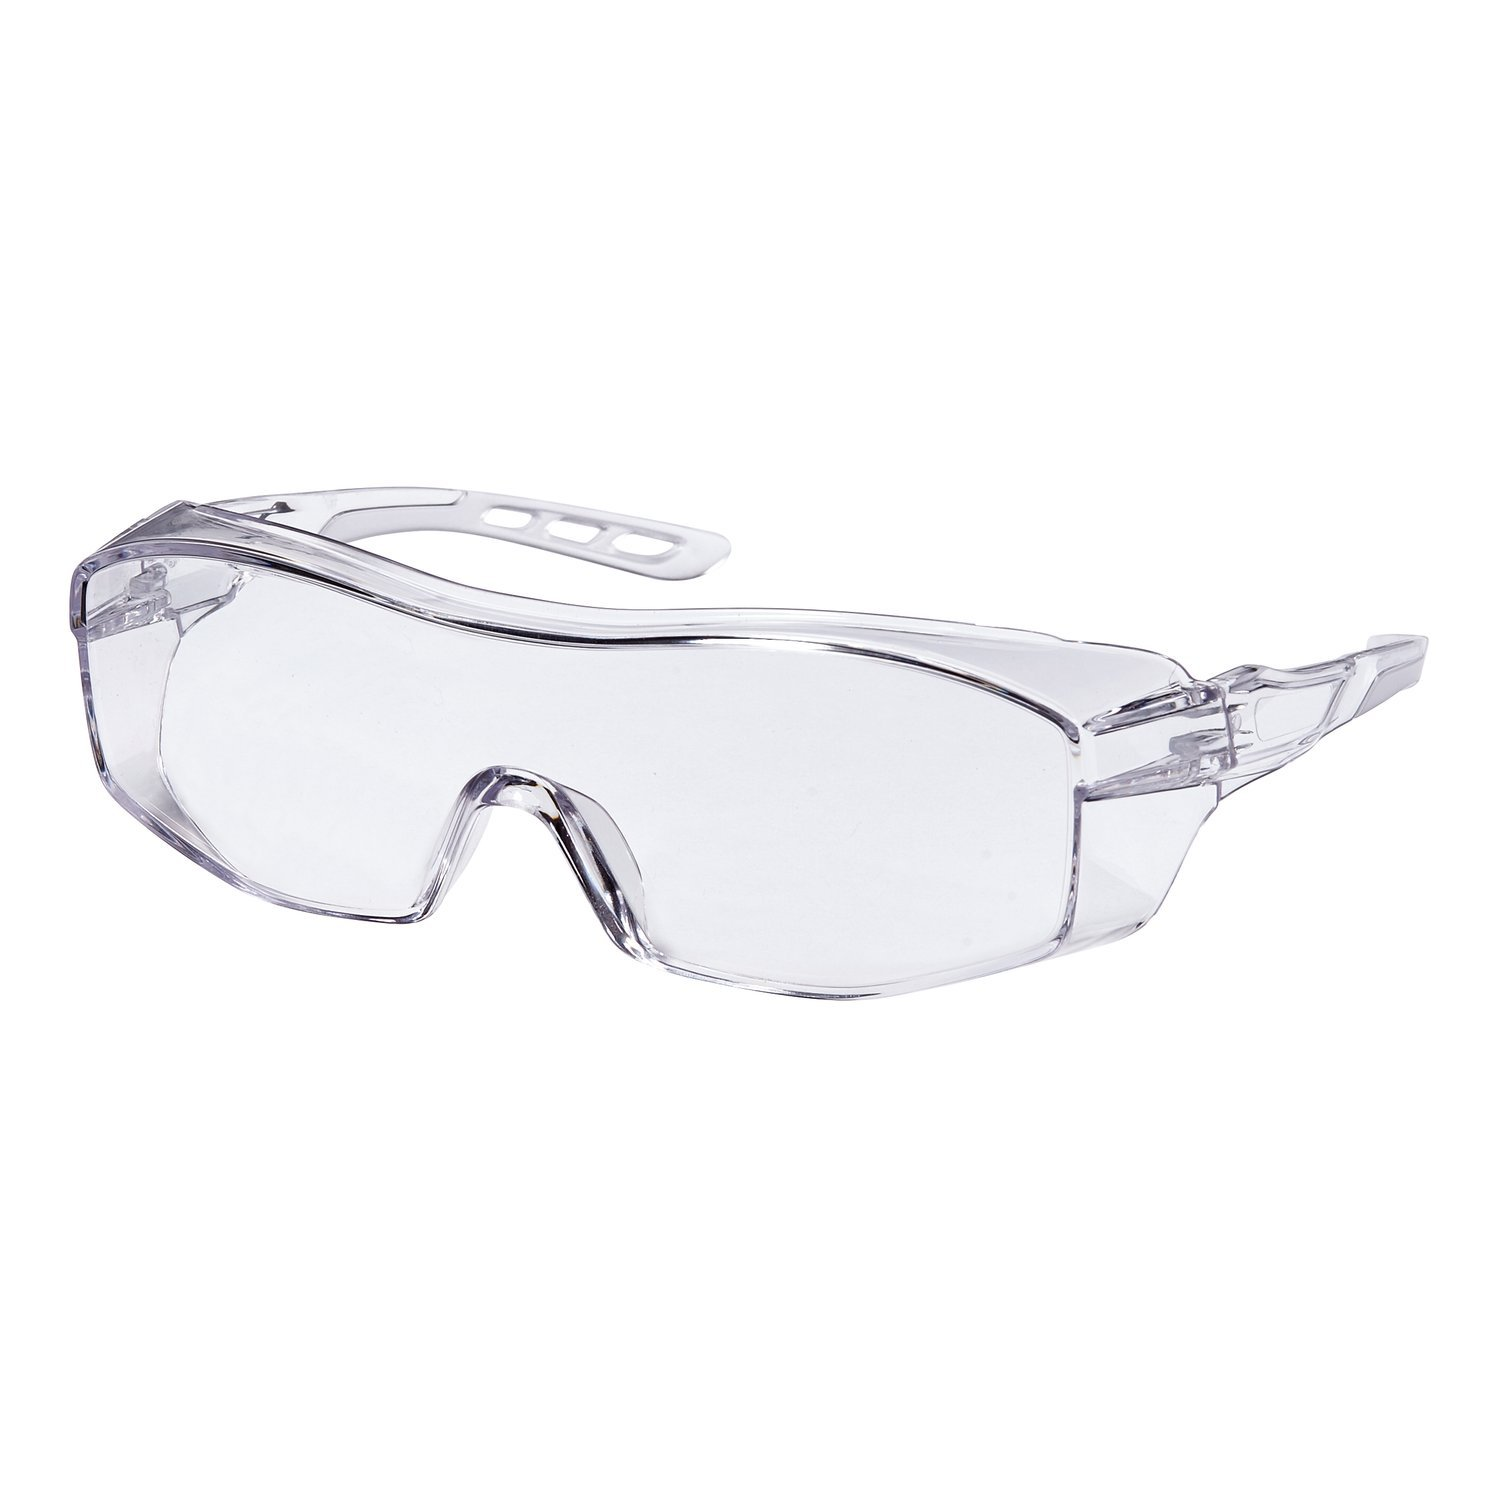 Clear /& Lens Clear 3M CHIMD Frame 3M 47031-WZ6 Eyeglass Protectors with Scratch Resistant Lens